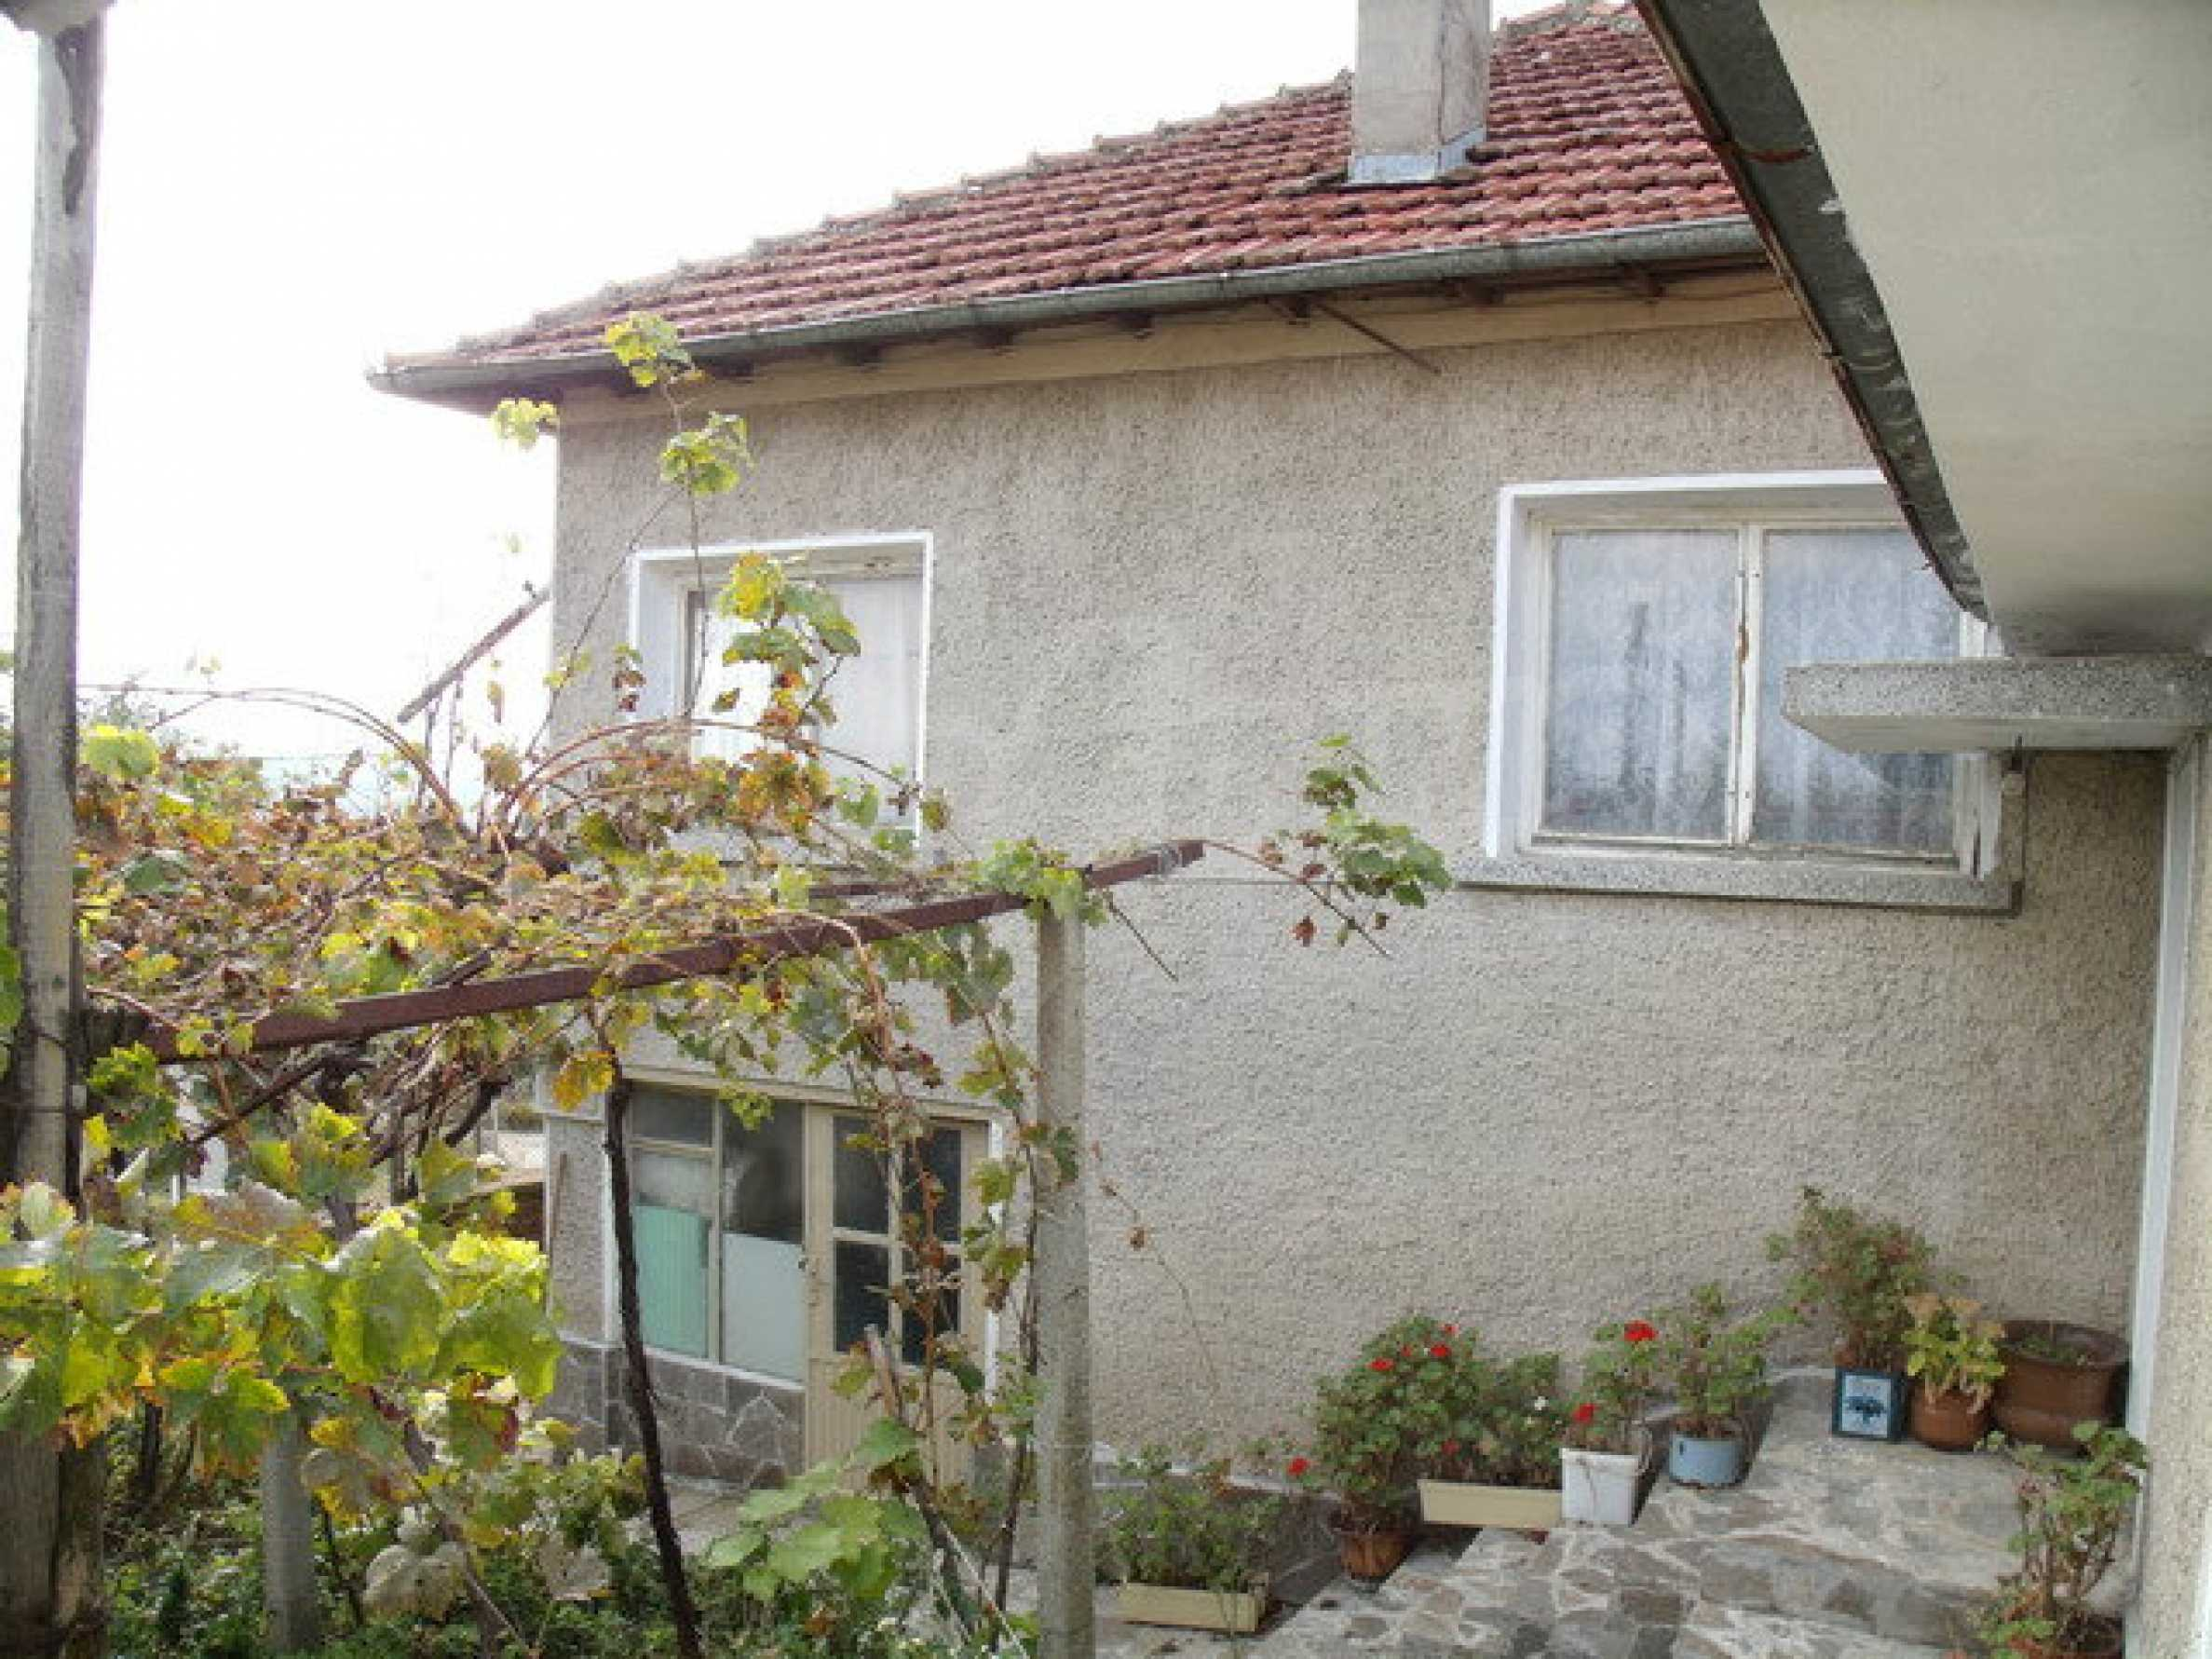 House in a small town, 15 km. from the old capital of Veliko Tarnovo 37